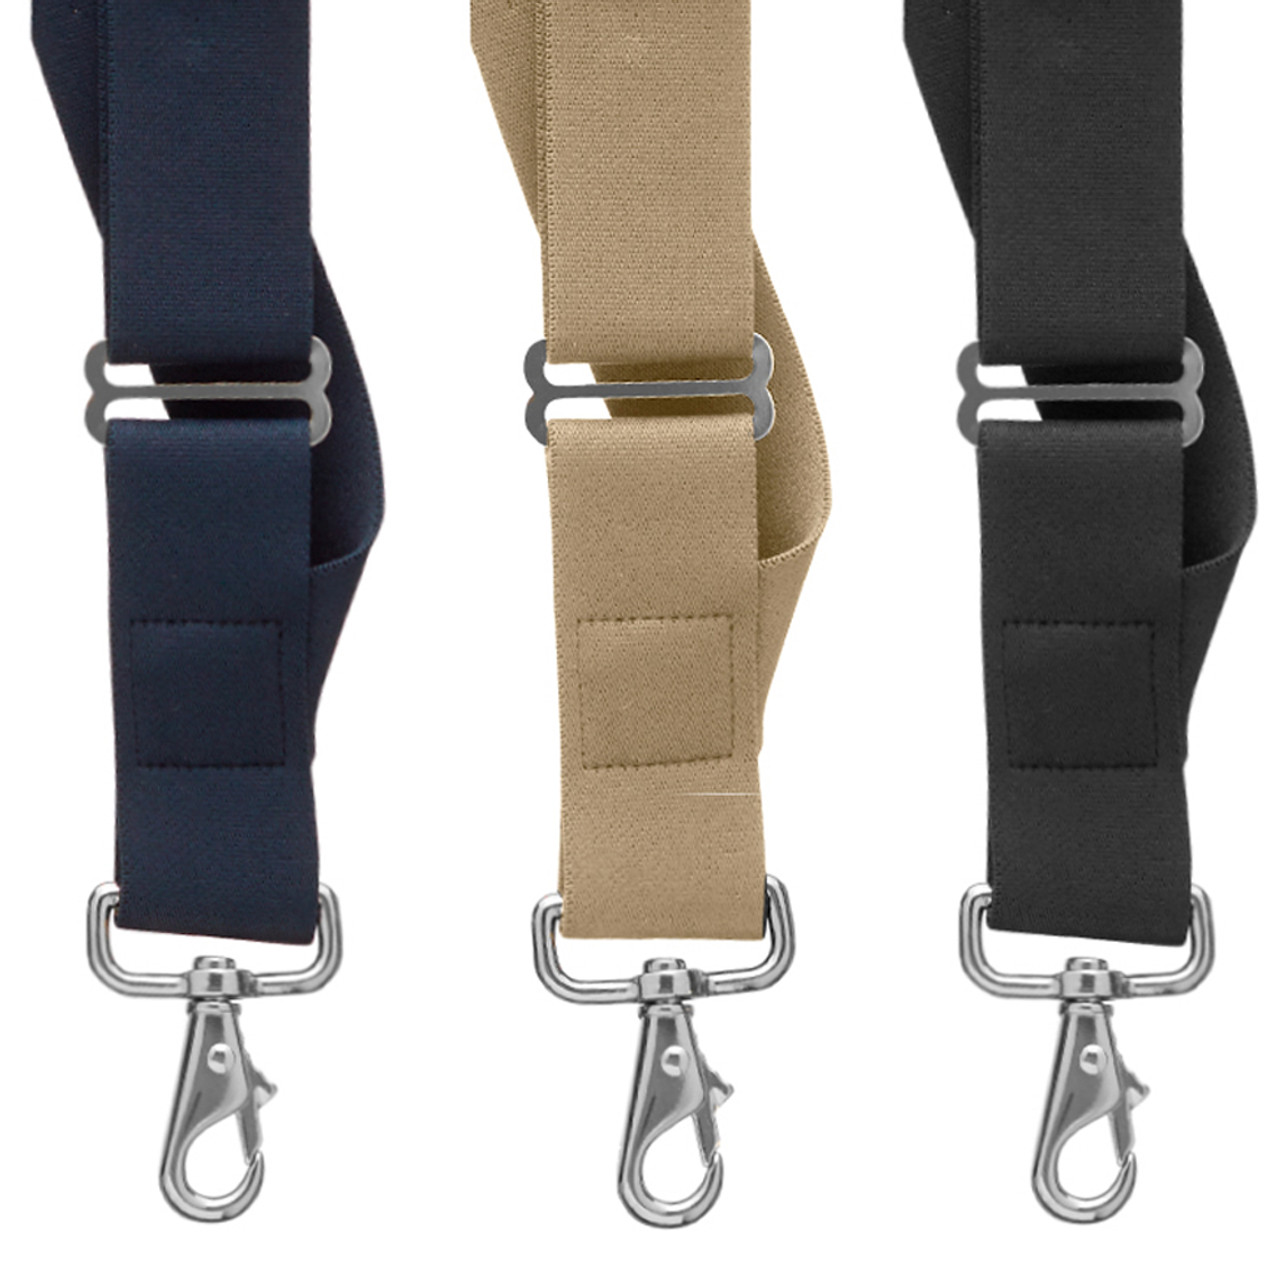 a297bb3ad42 Side Trigger Snap Suspenders - 1.5 Inch Wide